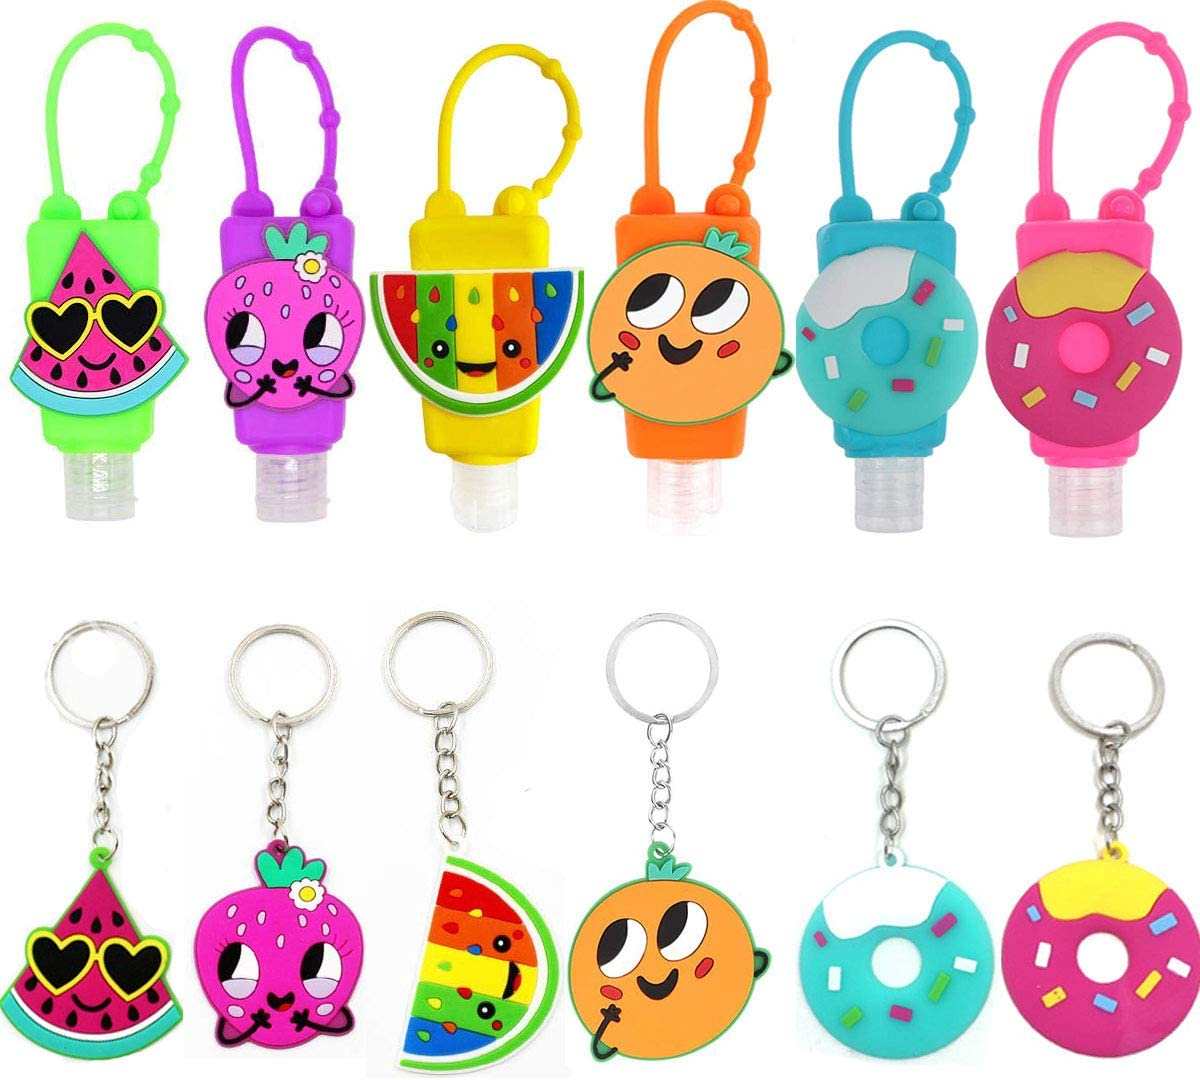 6PCS Kids Hand Sanitizer Holder Flip Cap Reusable Portable Empty Travel Size Bottle, 6PCS Food Keychains, with Silicone Case Refillable Travel Containers, Liquid Soap, Lotion Christmas